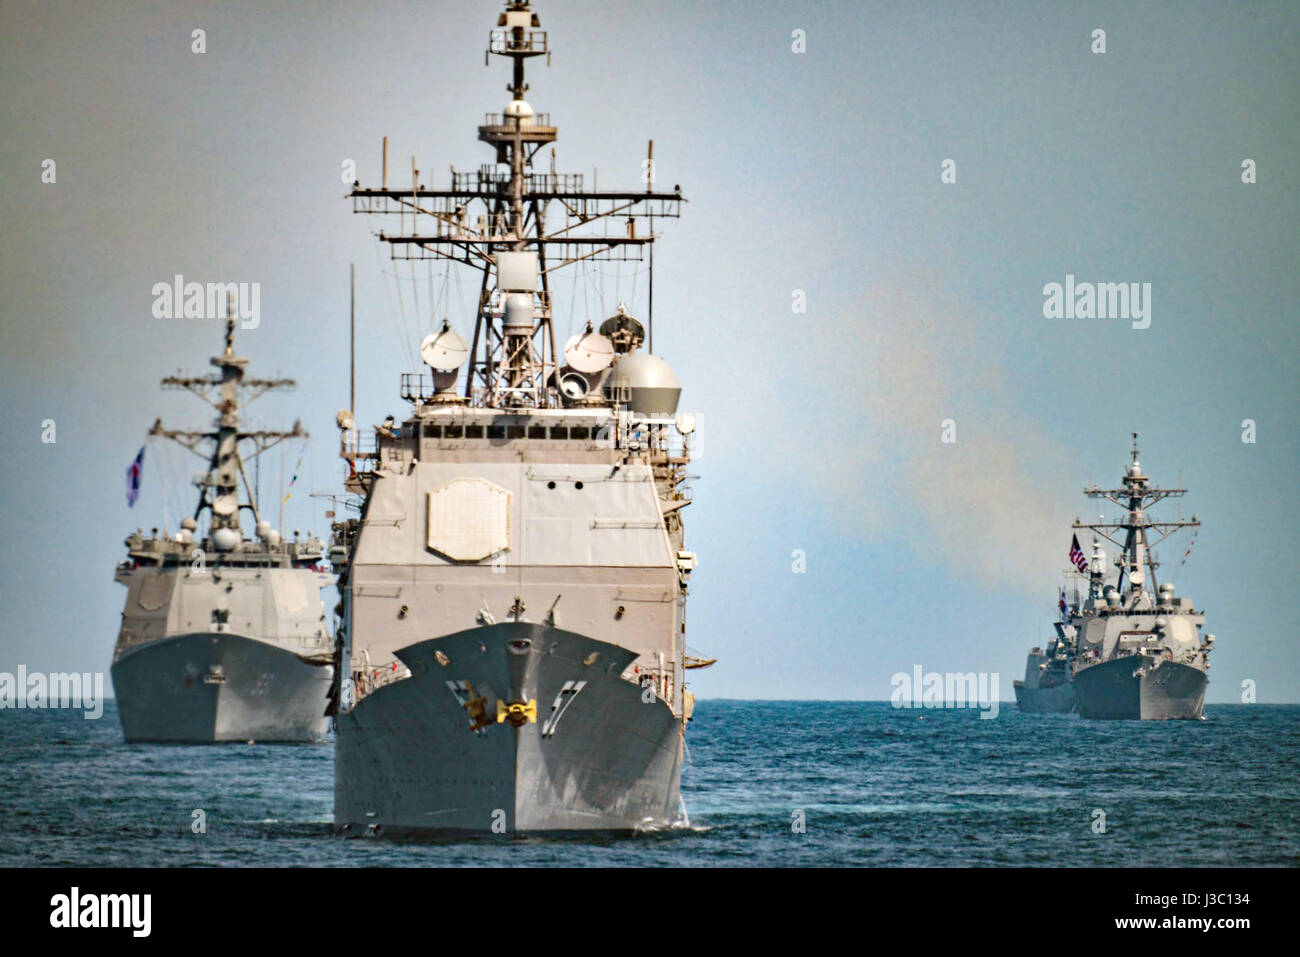 The U.S. Navy Ticonderoga-class guided-missile cruiser USS Lake Champlain, center, Korean Navy destroyers Sejong Stock Photo